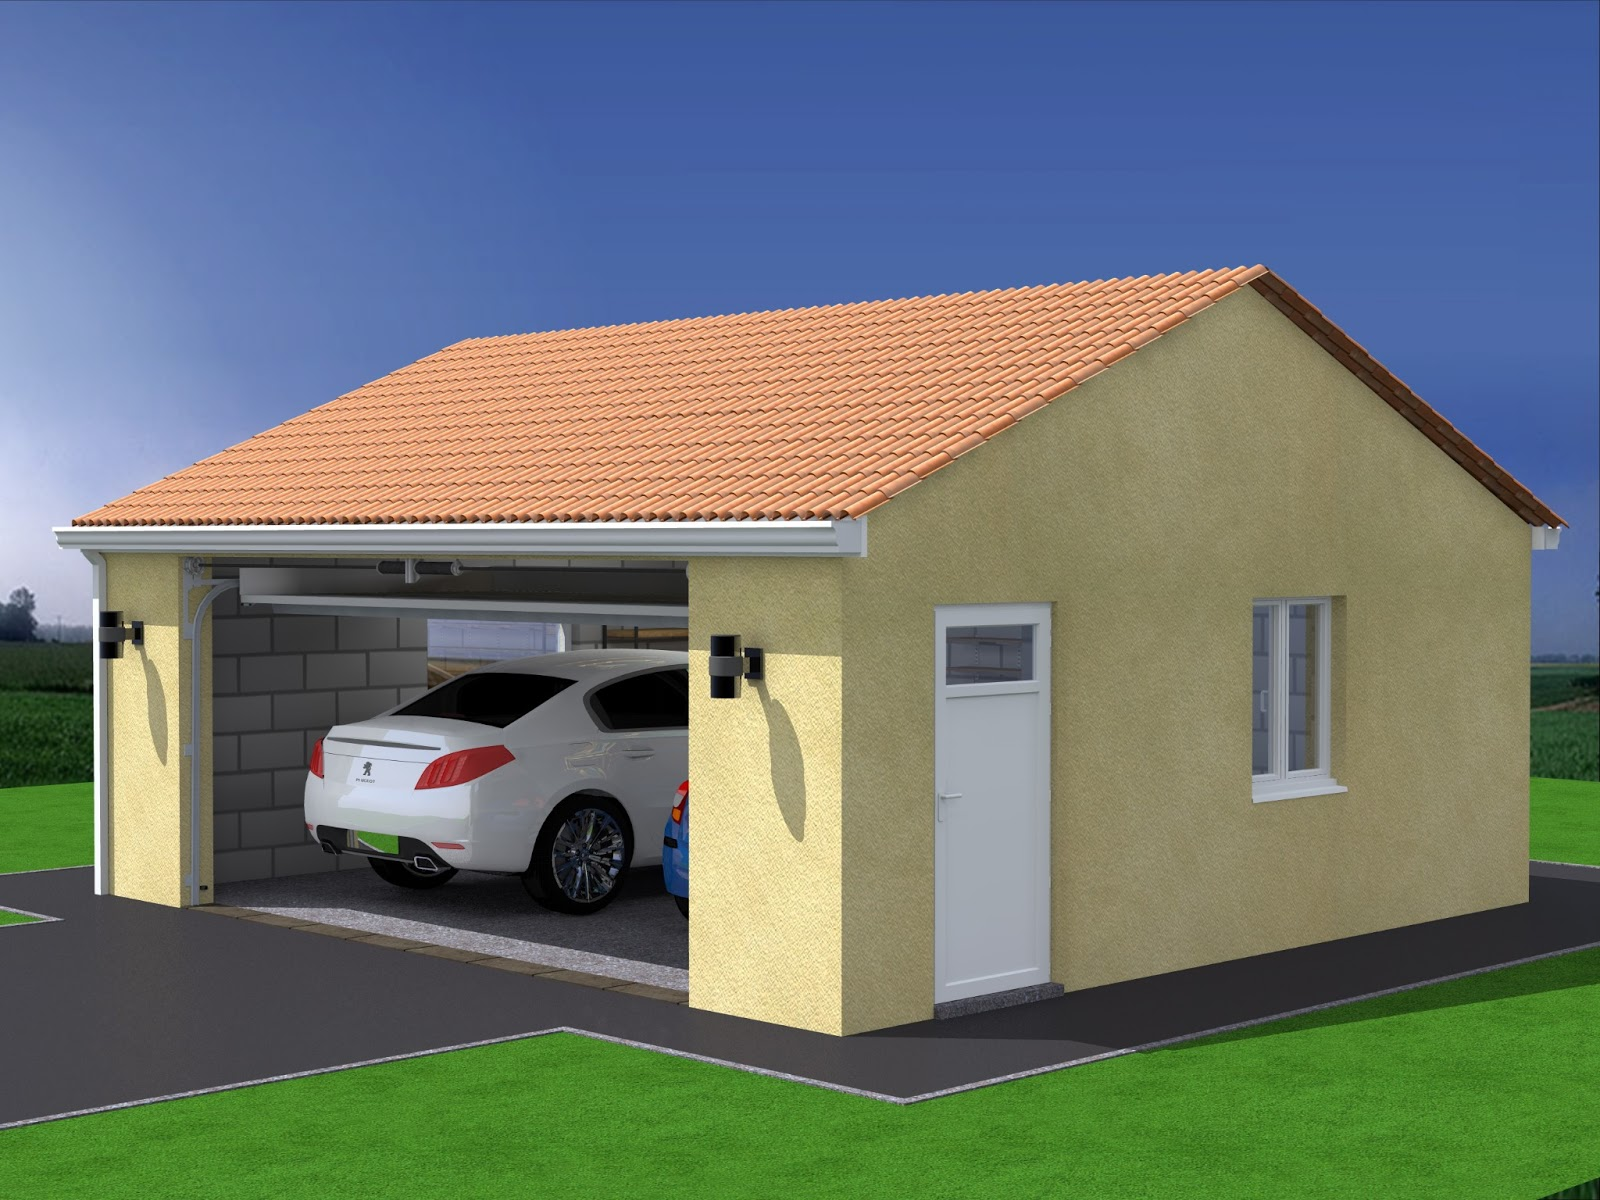 Cout de construction d un garage co t de construction d for Prix d un garage en dur